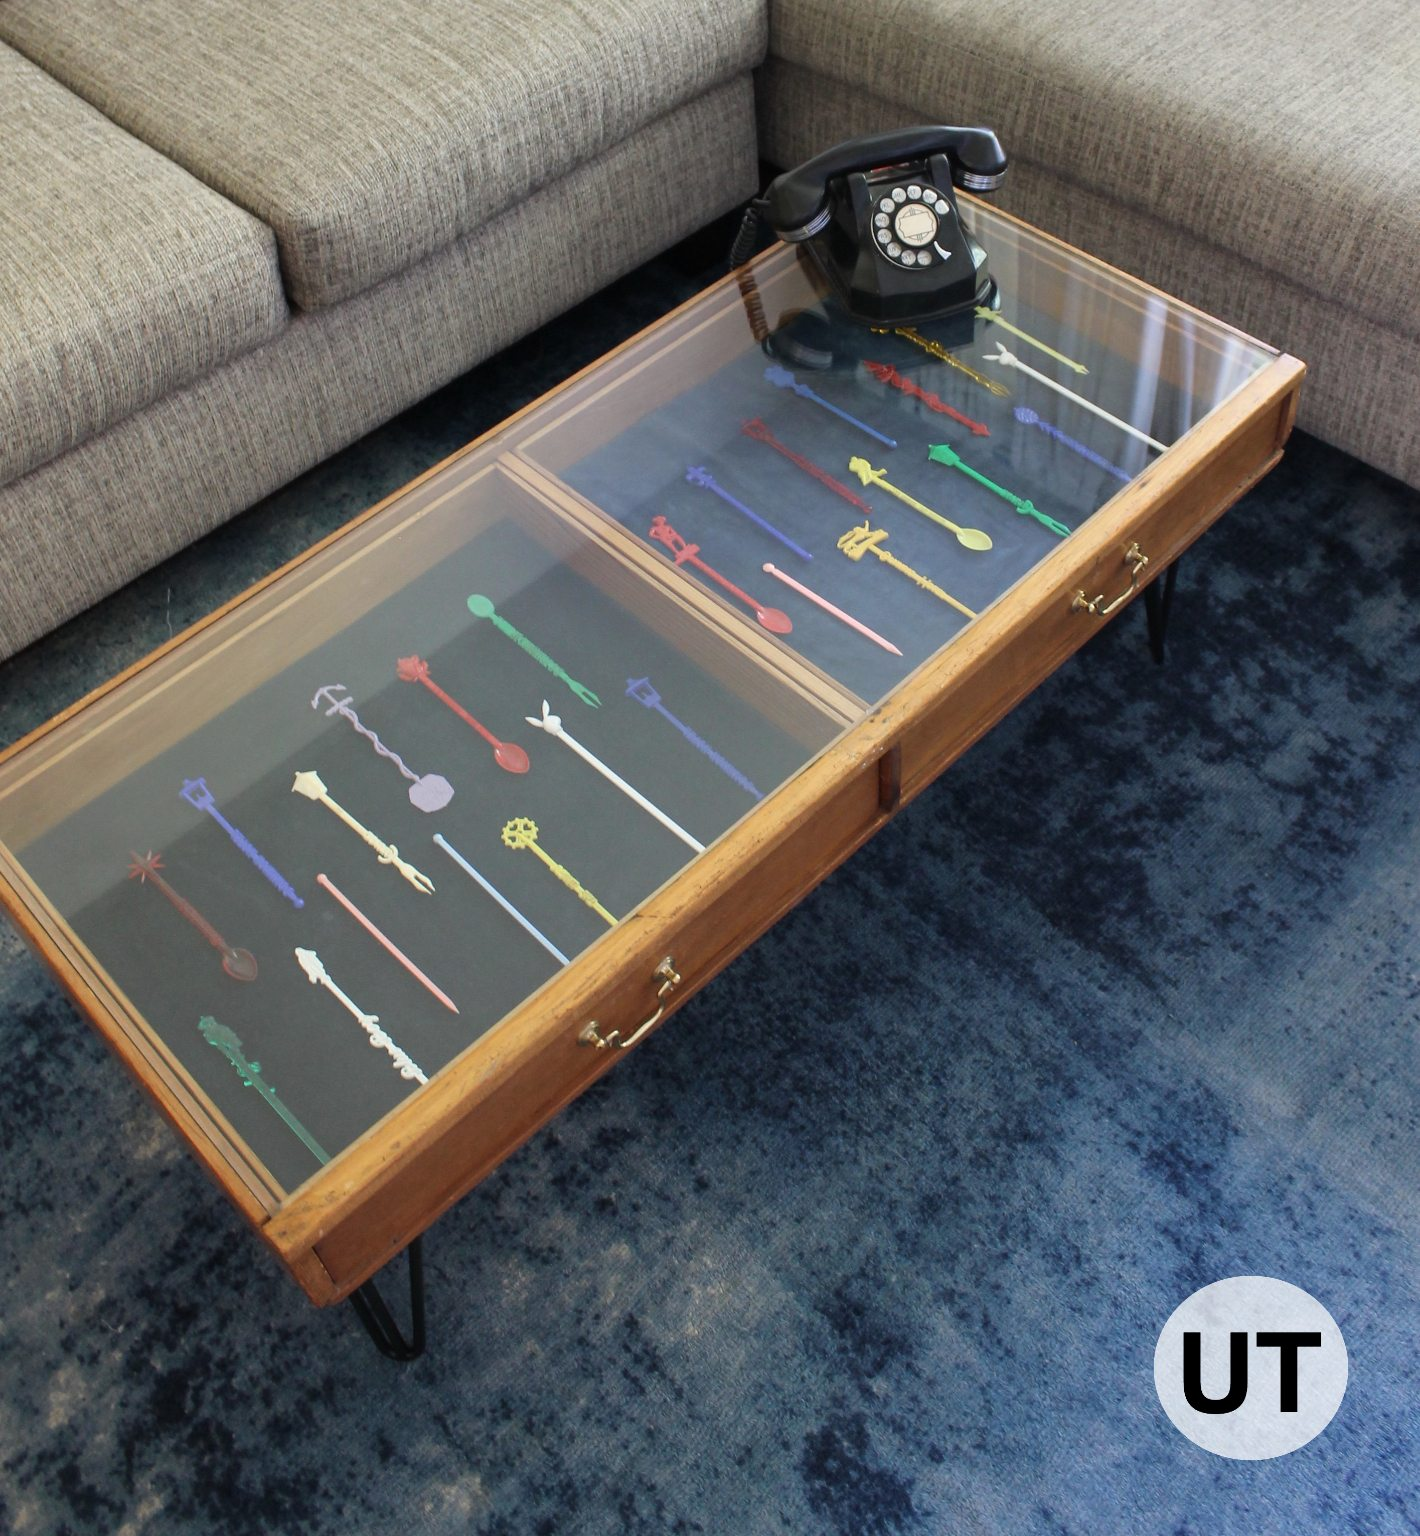 This Upcycled Coffee Table Is Awesome. We Made It From An Old Drawer! Itu0027s  The Perfect Coffee Table For Showcasing A Collection. We Love That It Can  Display ...